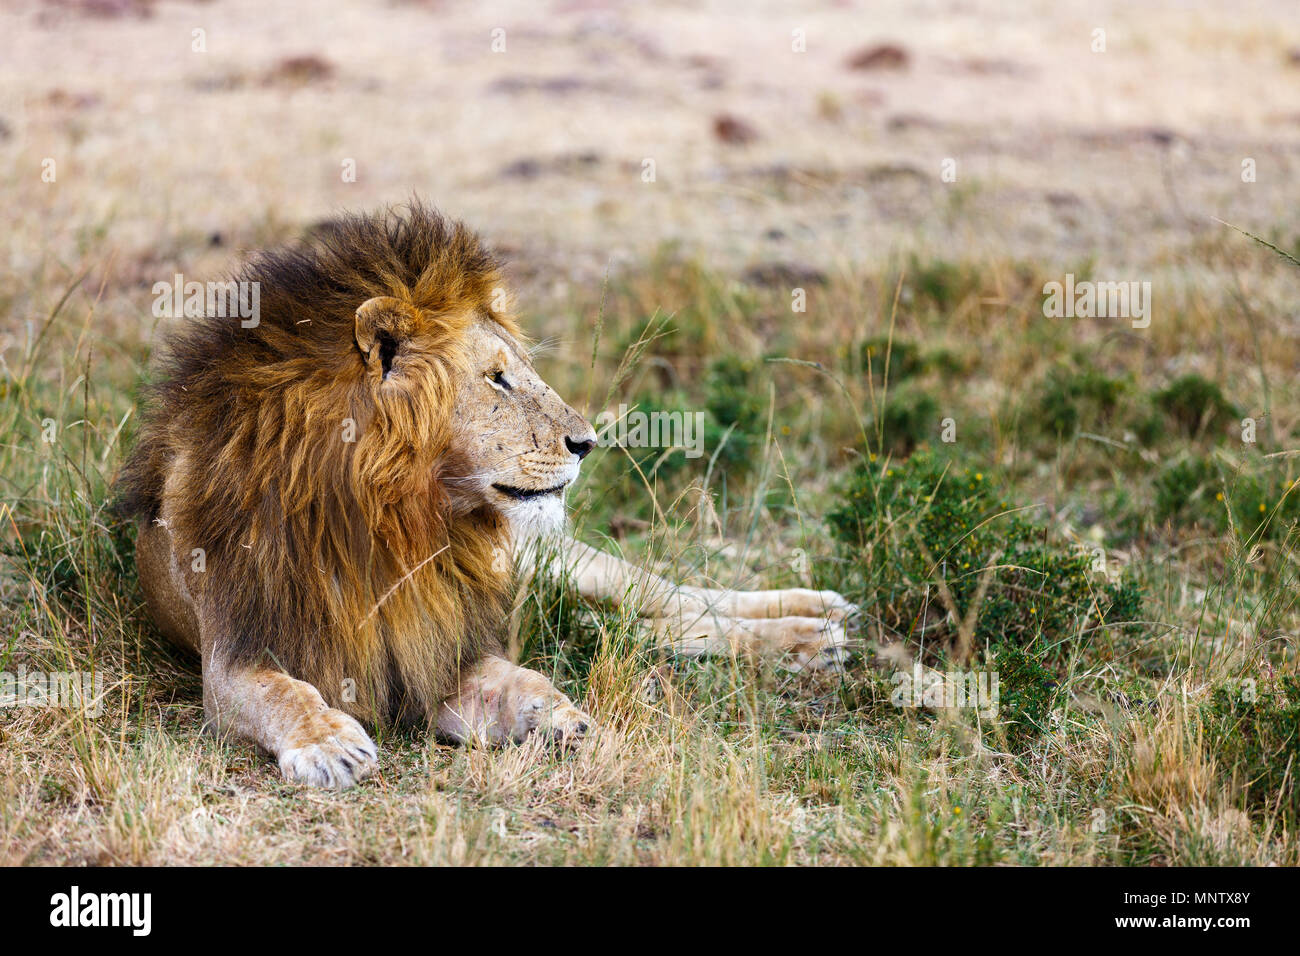 Male lion lying in grass in savanna in Africa - Stock Image